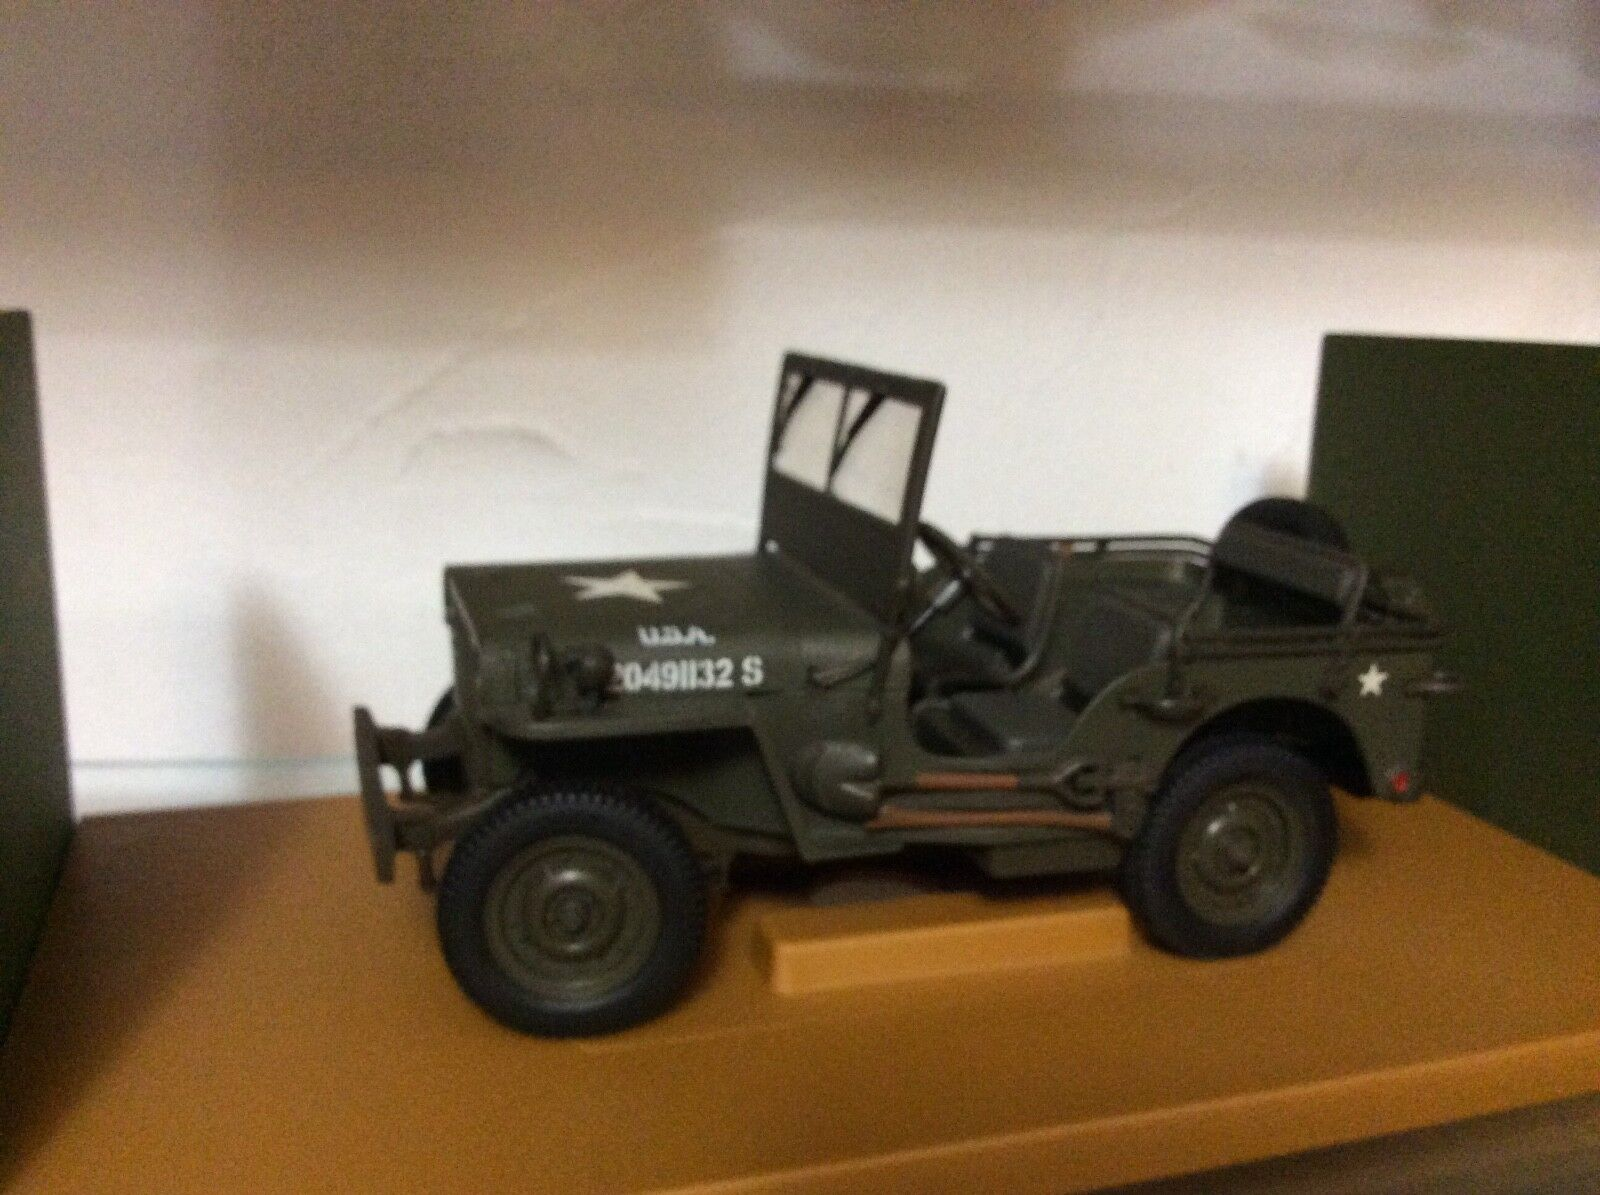 Army Jeep green 1 18 scale U T models display piece loose